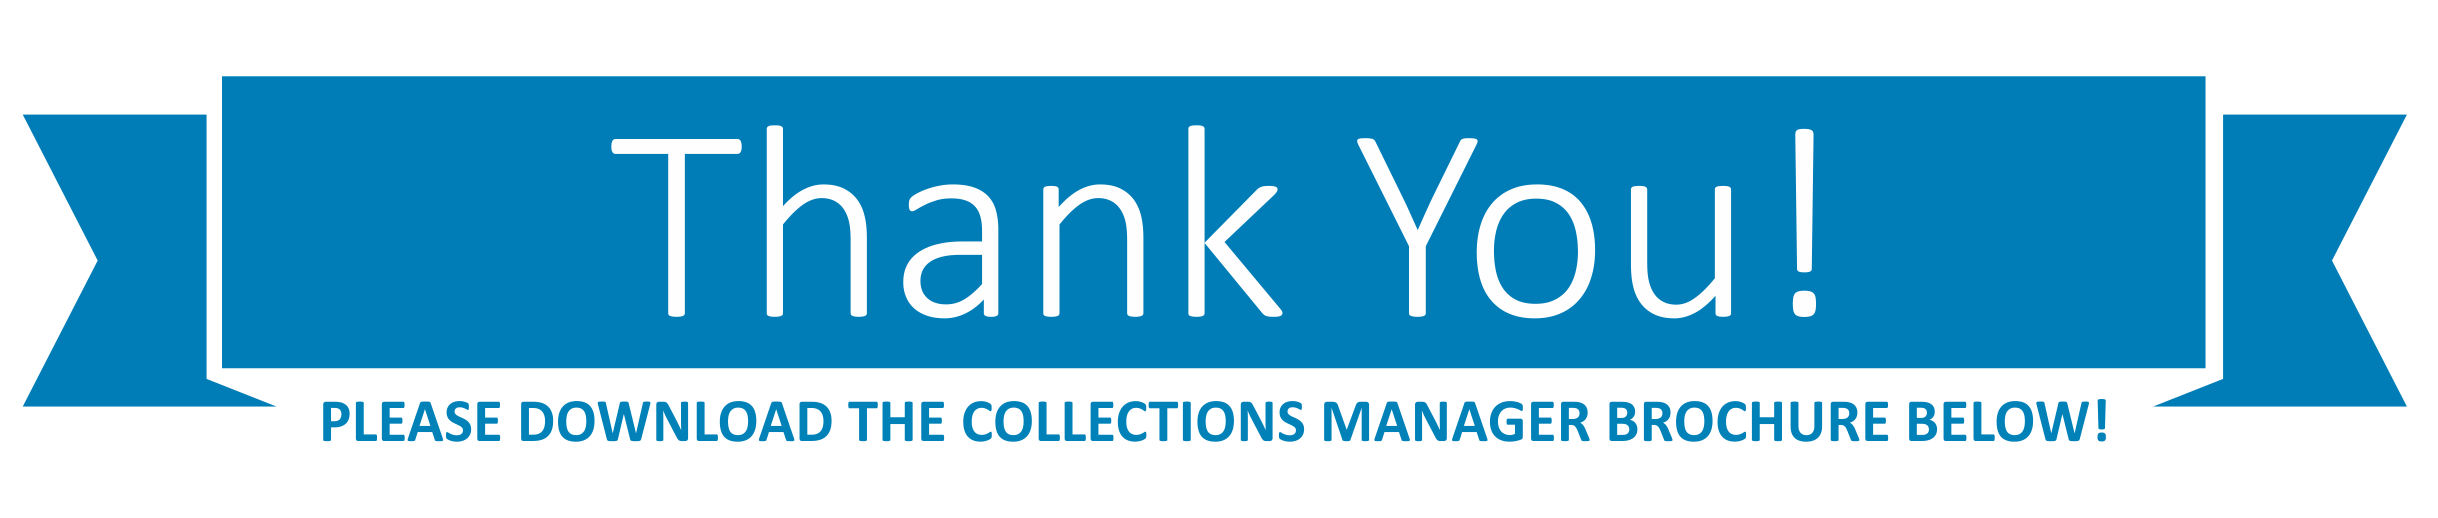 ThankYouCollectionsManagerBrochure